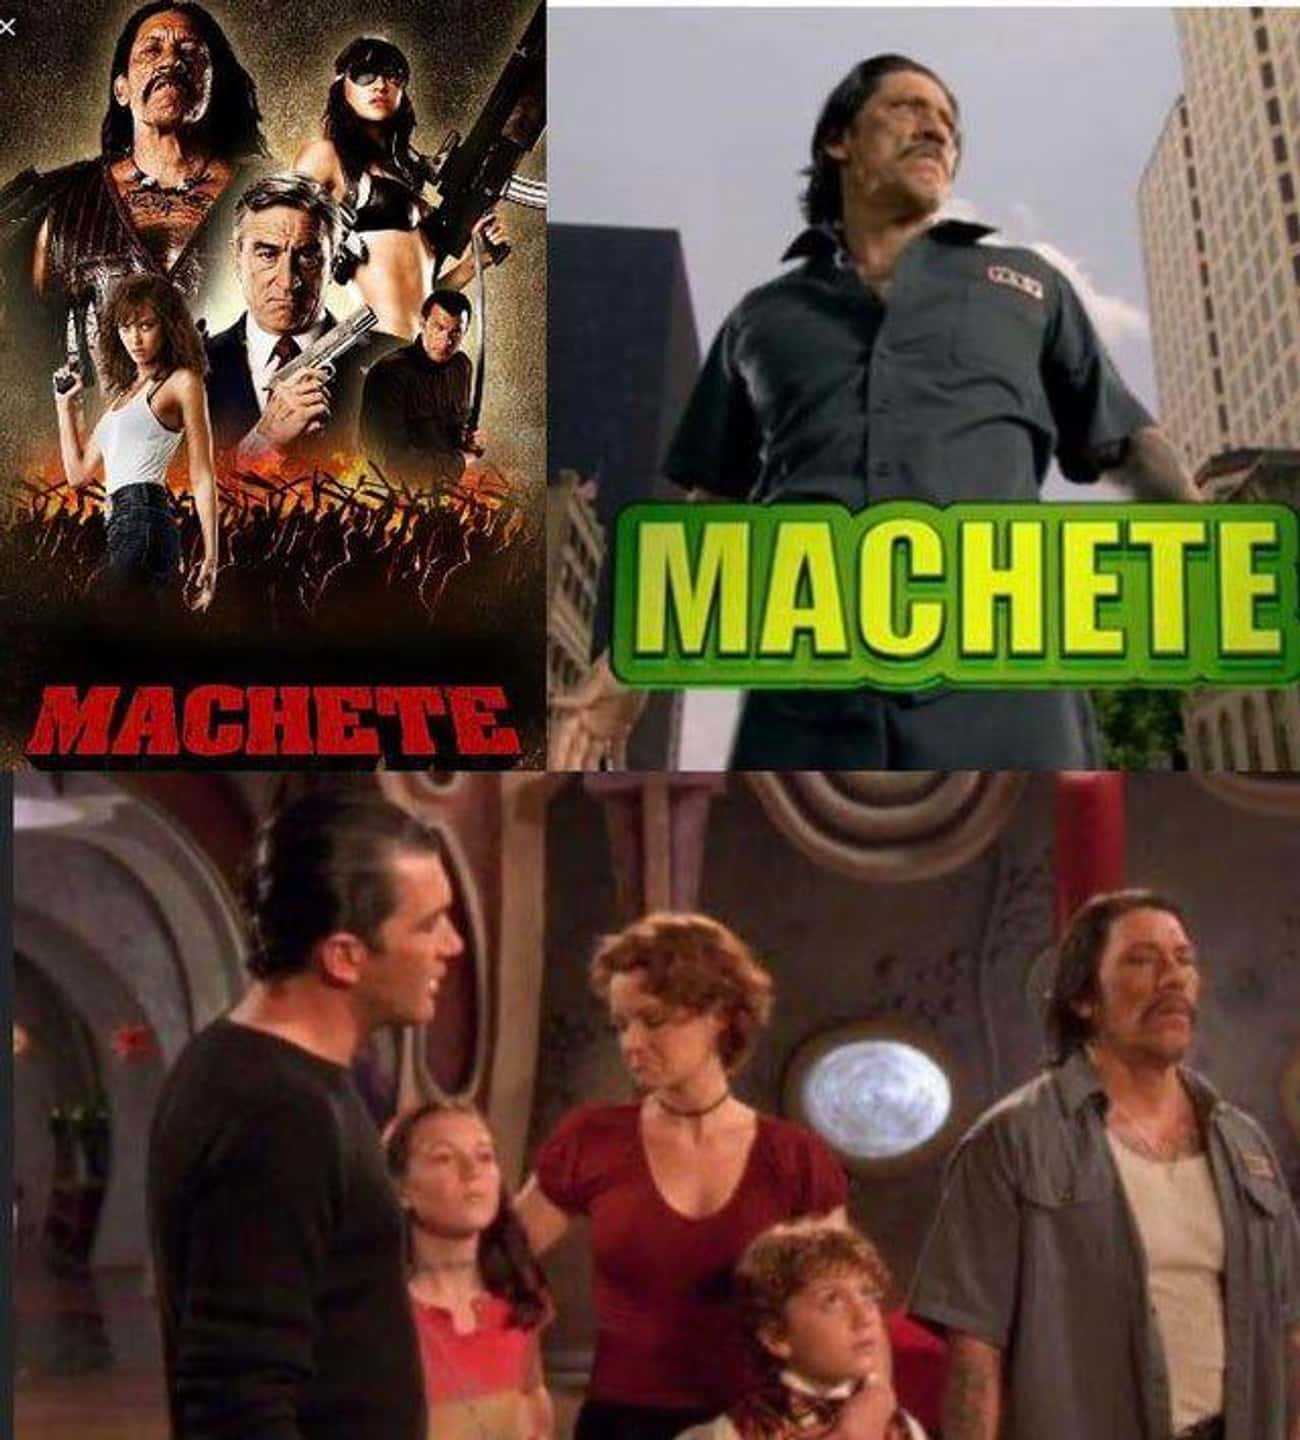 Machete is listed (or ranked) 4 on the list 20 Pretty Cool Movie Details We Found This Week That Made Us Say, 'That's Awesome'